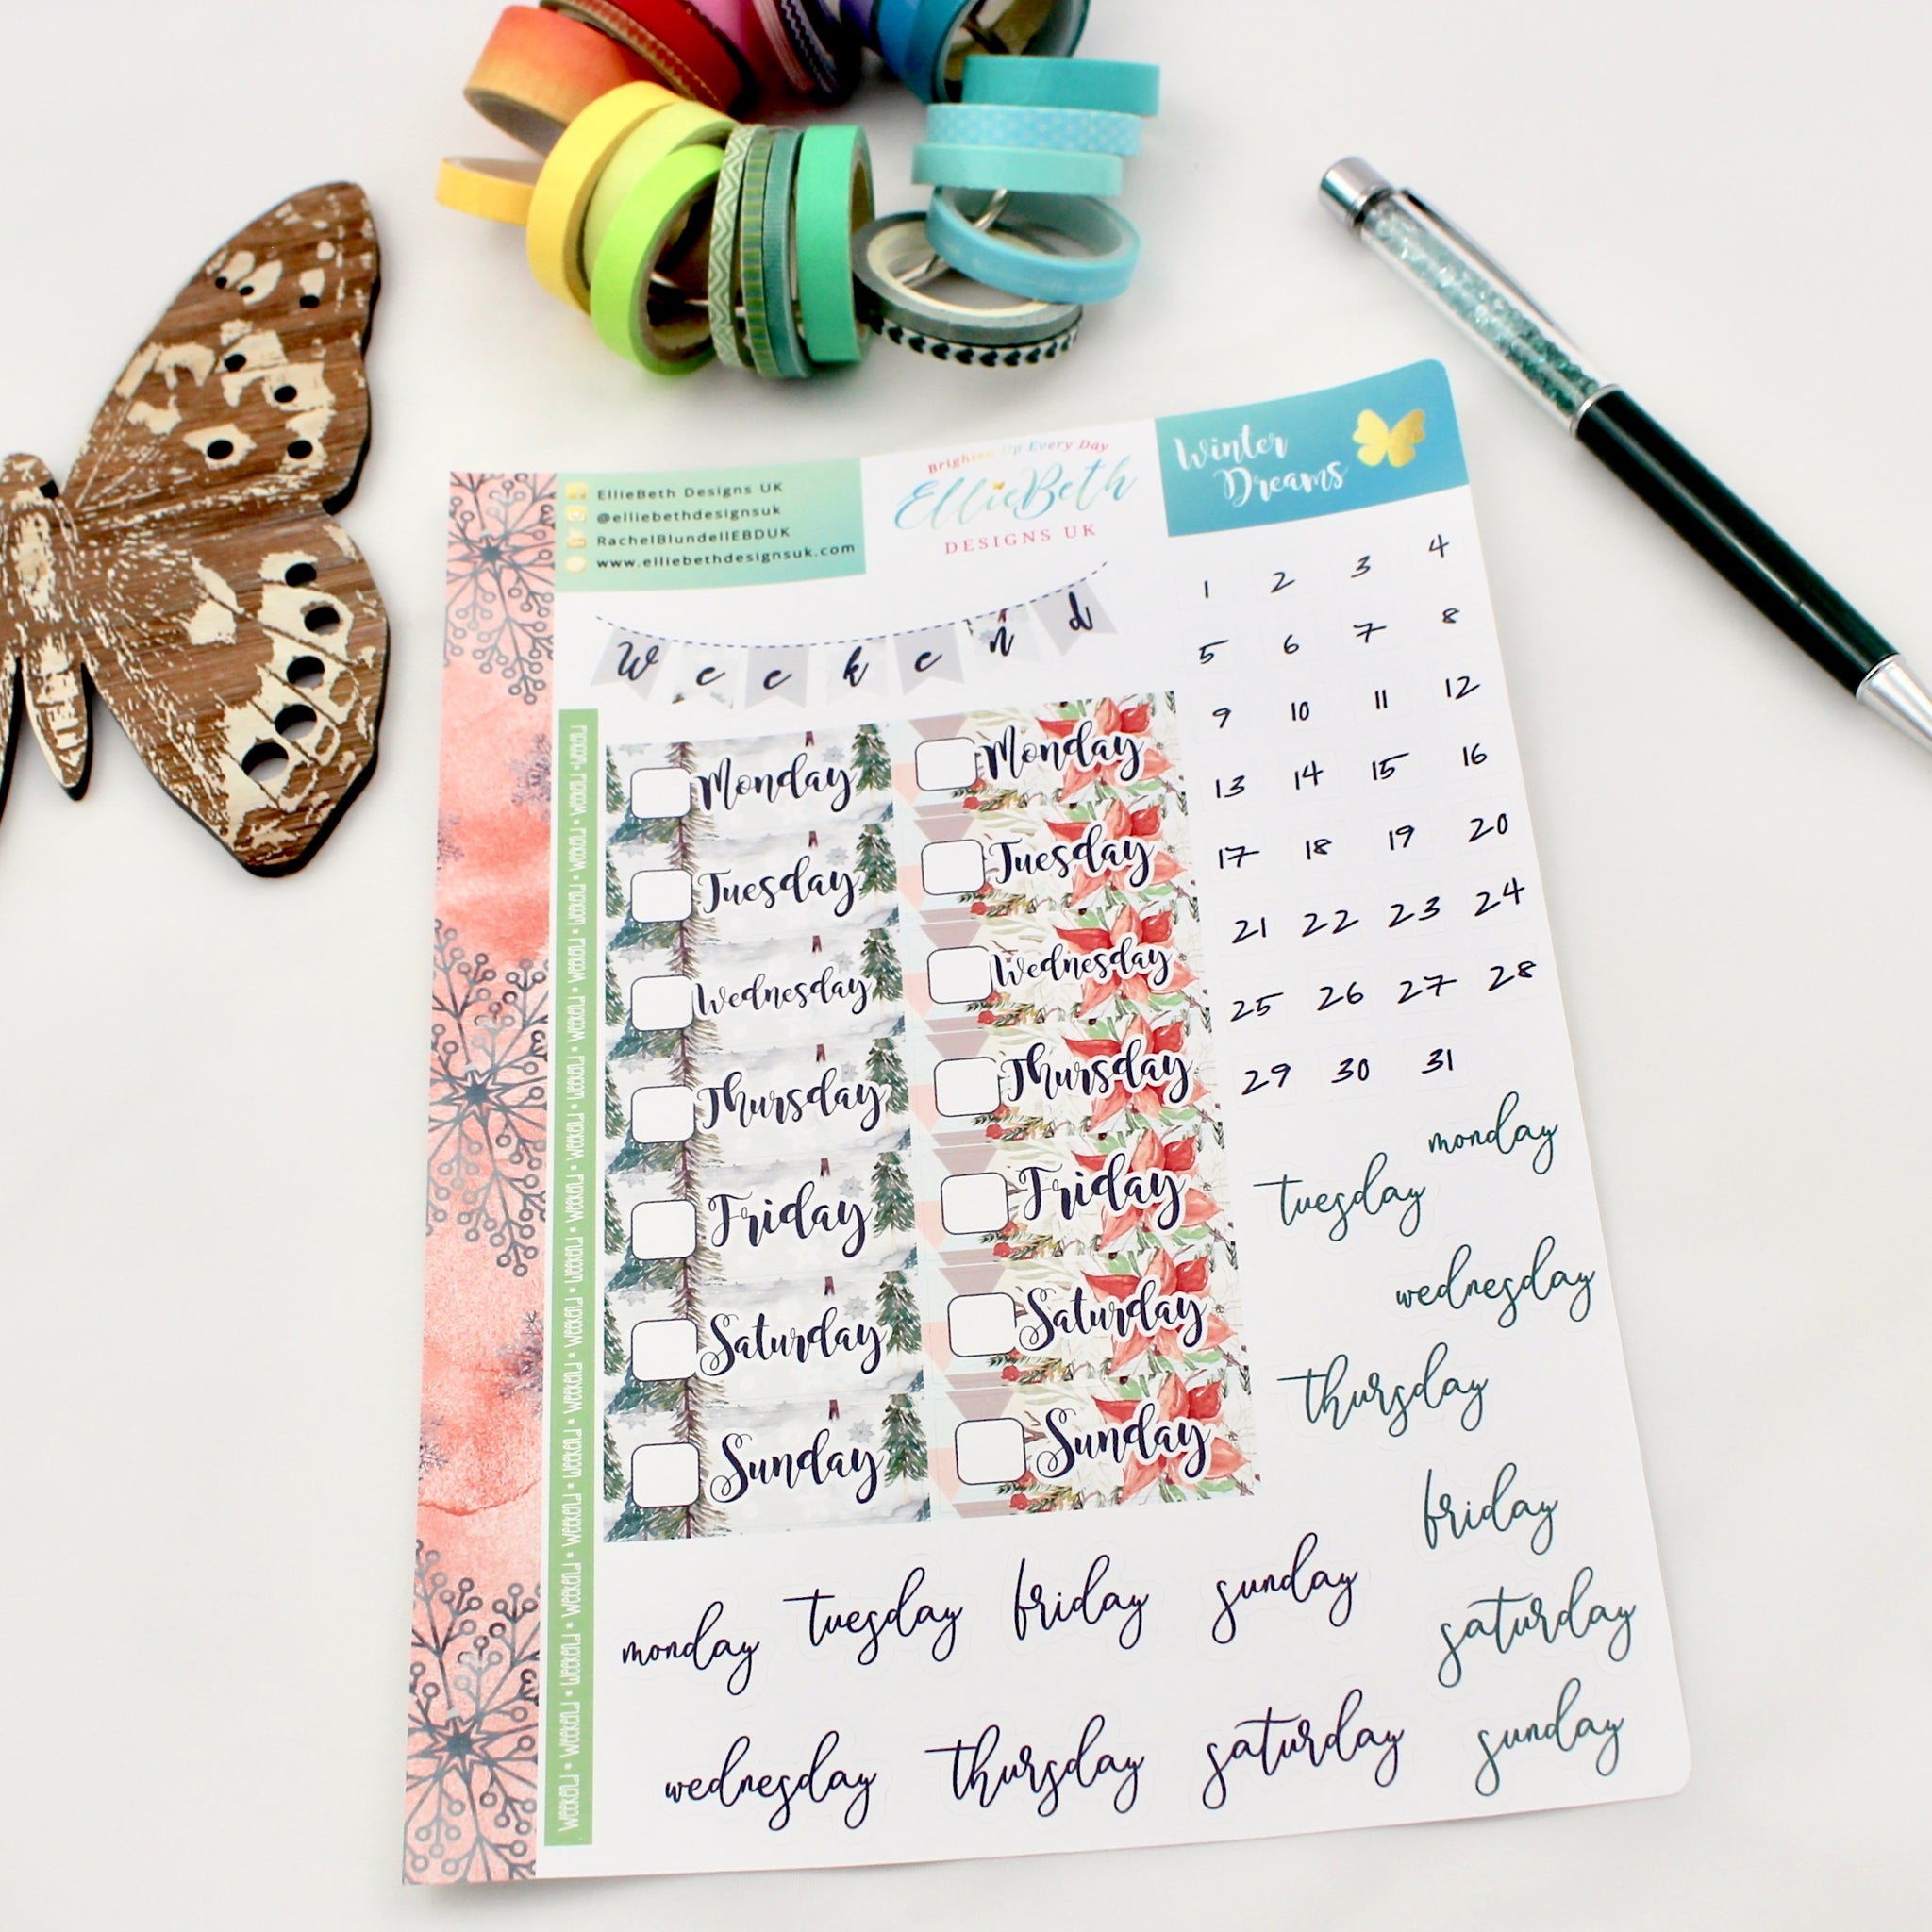 'Winter Dreams' - Days and Dates -  A5 binder ready planner stickers